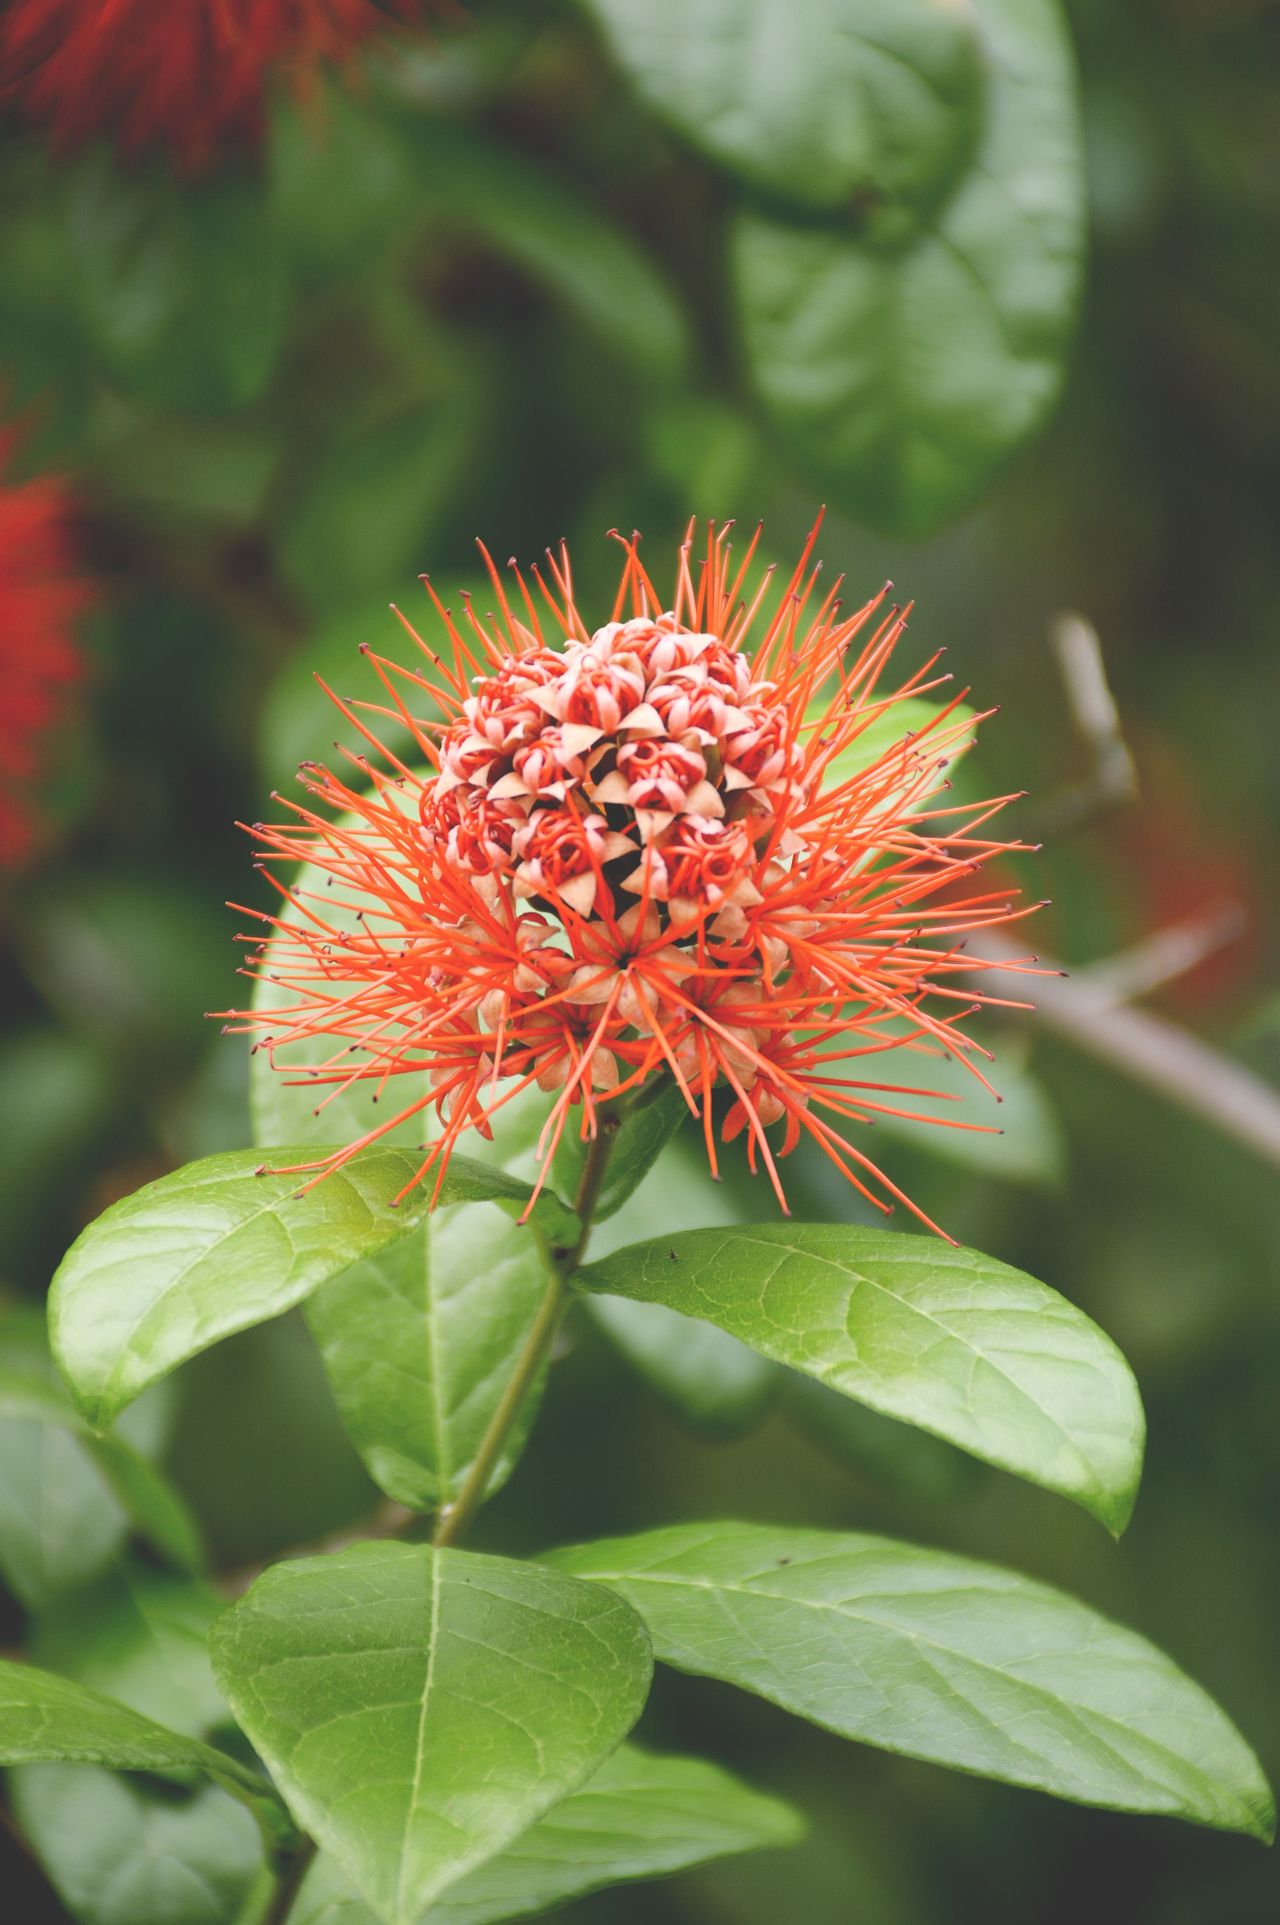 red combretum erythrophyllum flower in nature garden Beautiful Beauty In Nature Blooming Close-up Combretum Erythrophyllum Day Flora Floral Flower Flower Head Fragility Freshness Green Color Growth Leaf Nature No People Outdoors Petal Plant Pollen Red